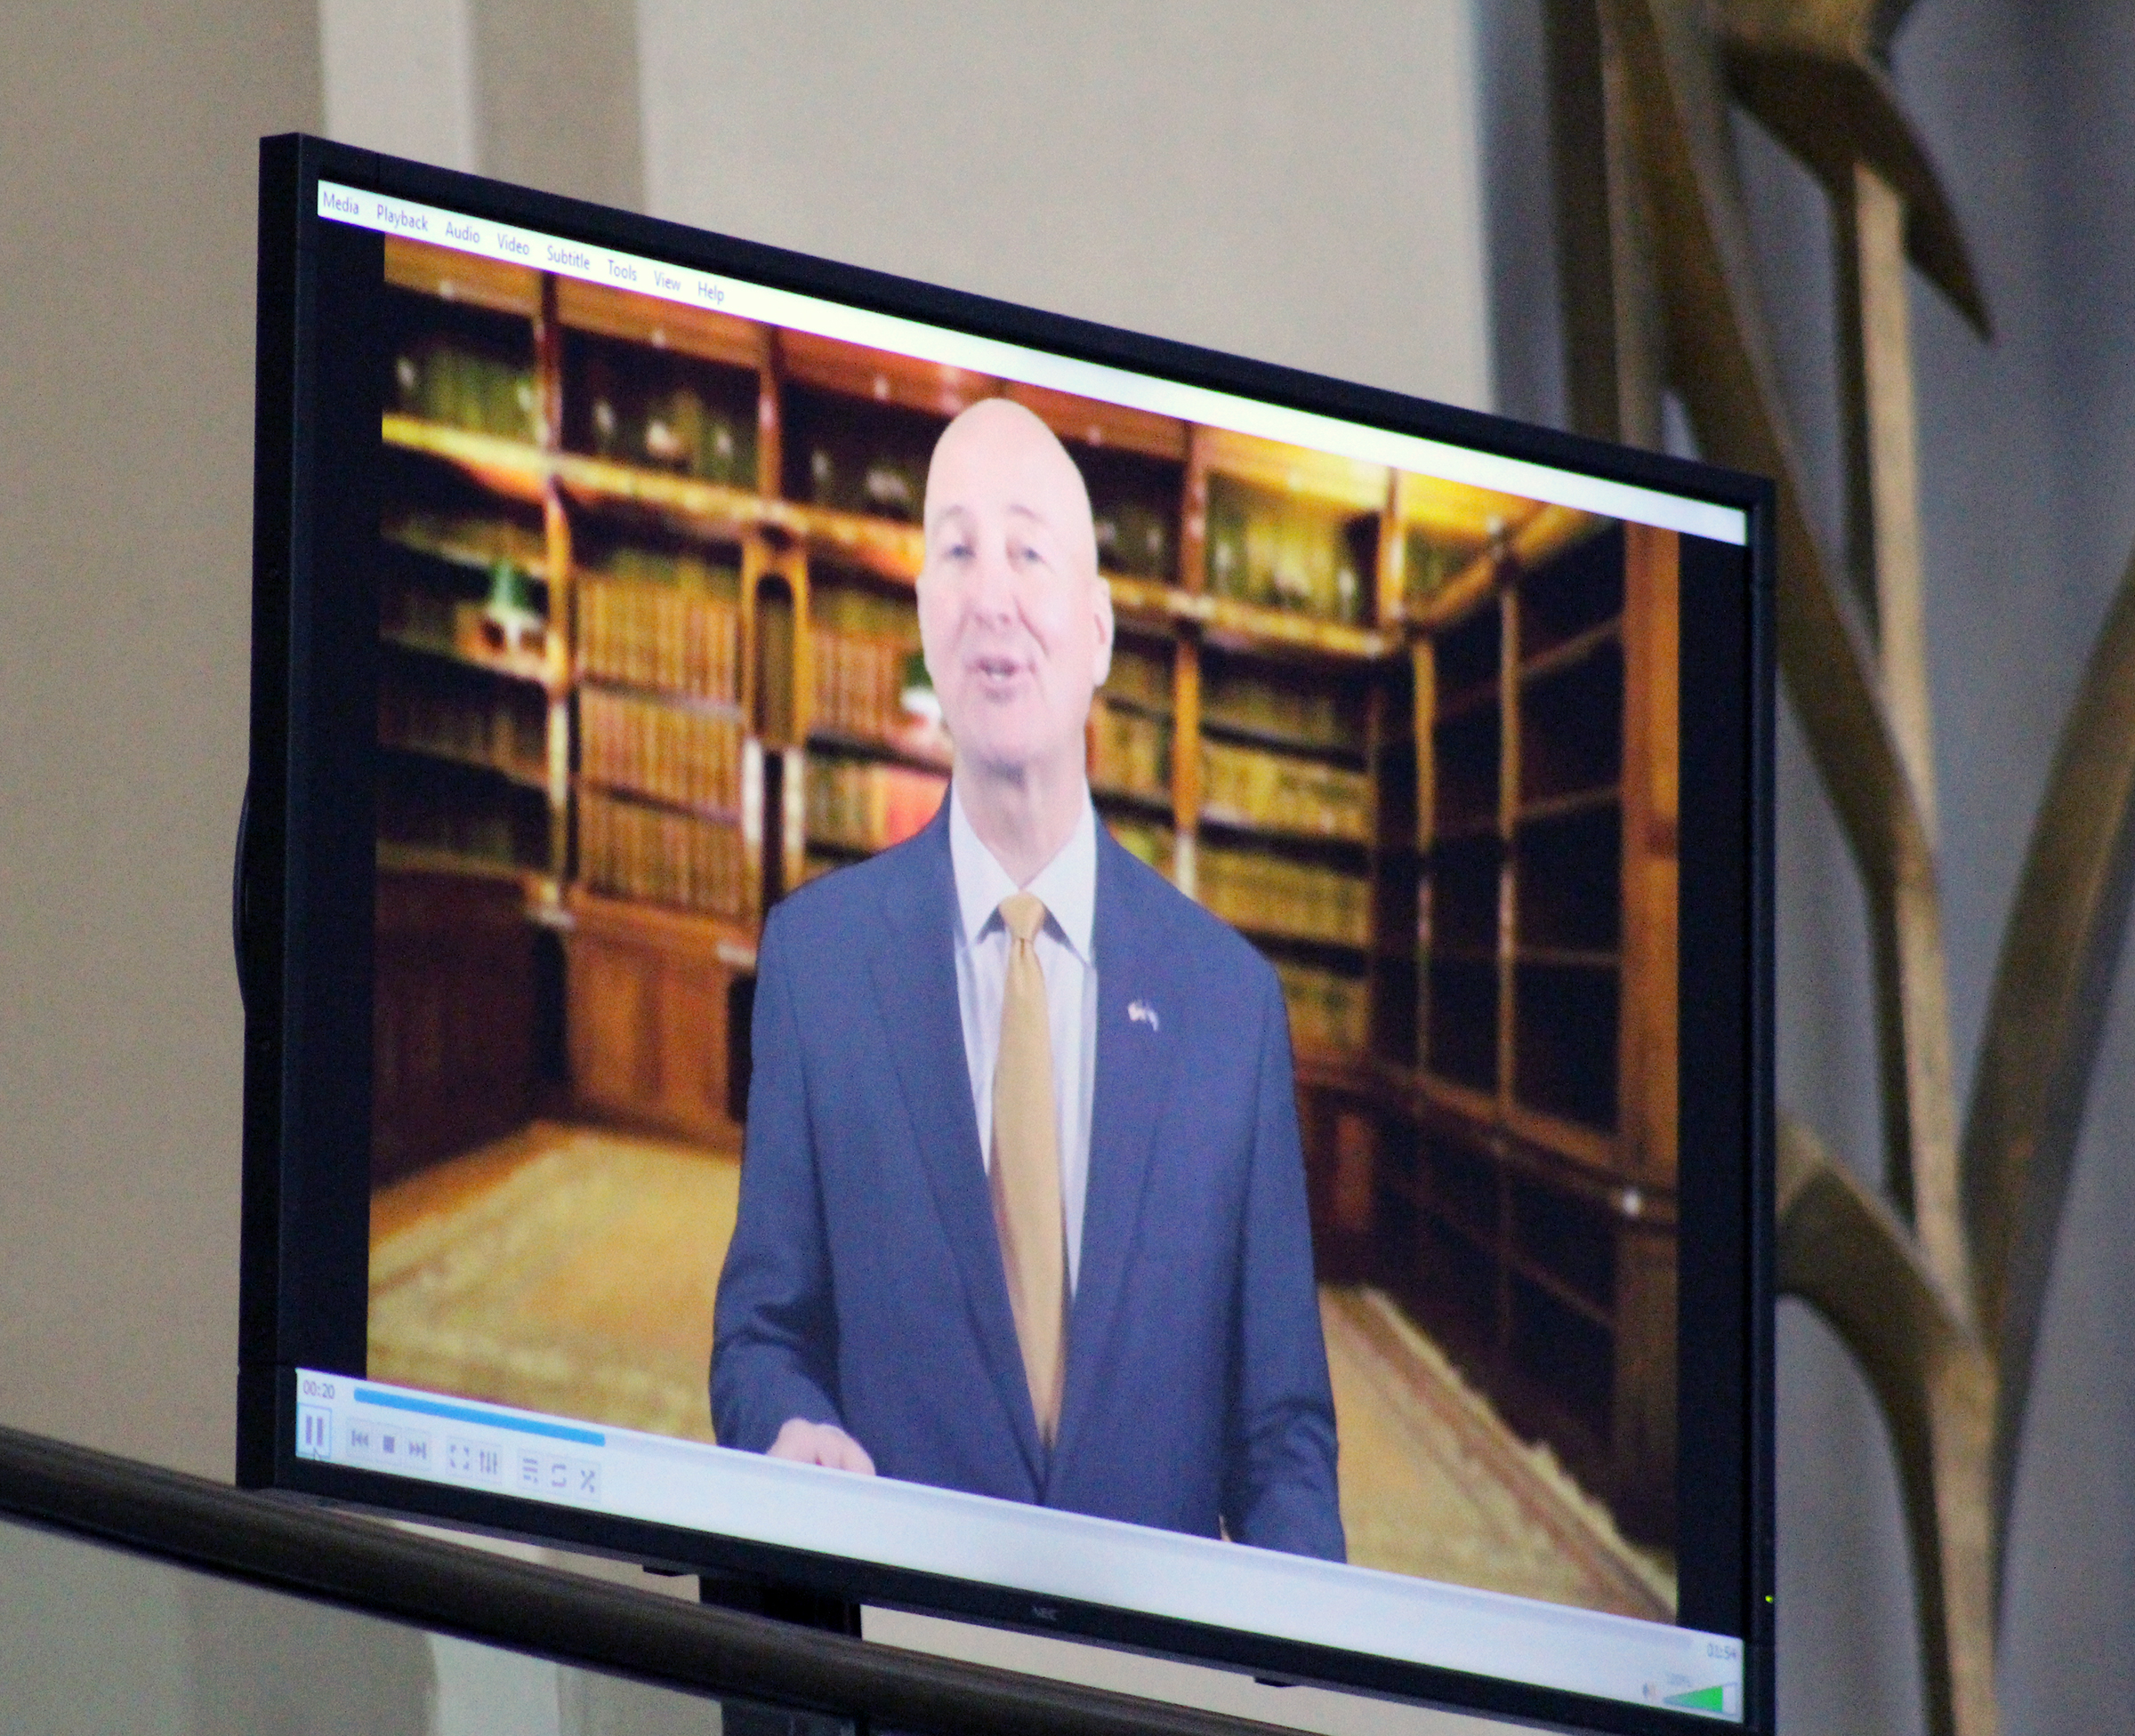 Nebraska Gov. Pete Ricketts delivers remarks by video during Brian C. Buescher's investiture ceremony at the Hruska Federal Courthouse on Friday, Nov. 15, 2019. (Photo by Scott Stewart)